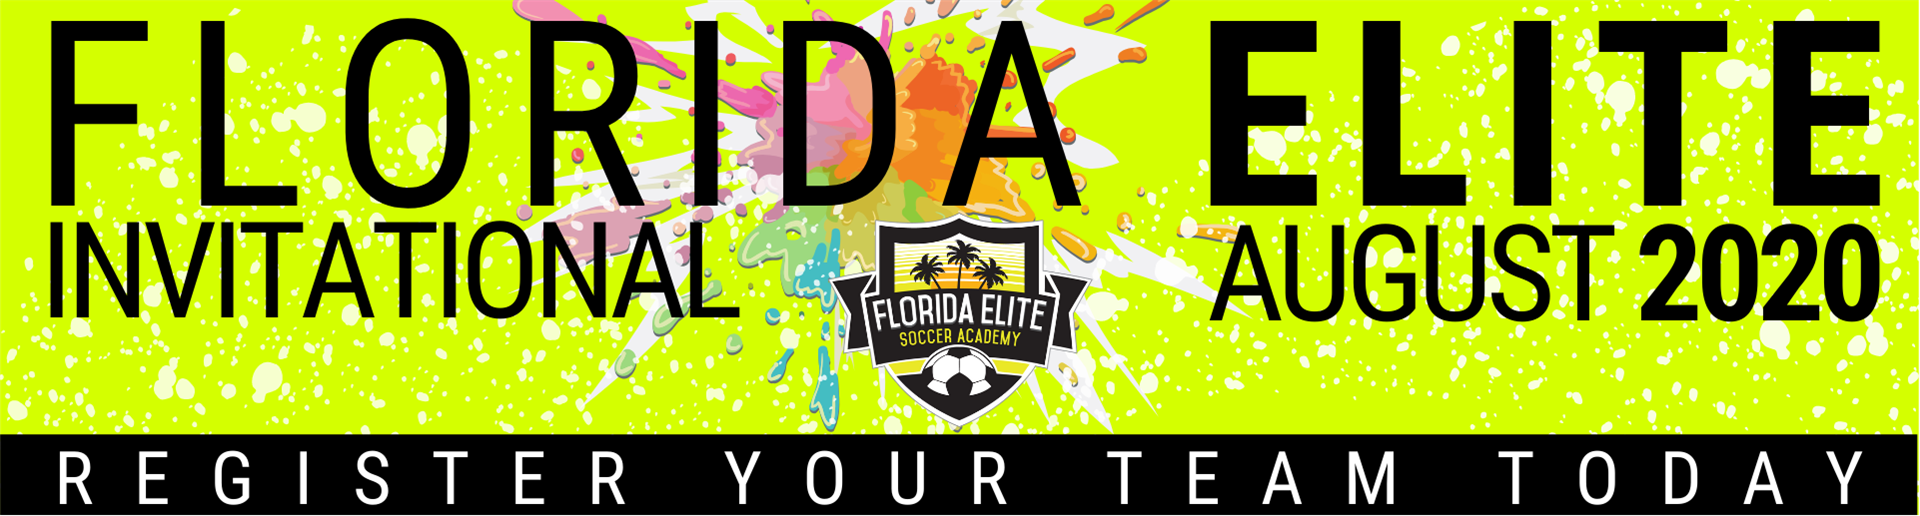 FLORIDA ELITE INVITATIONAL